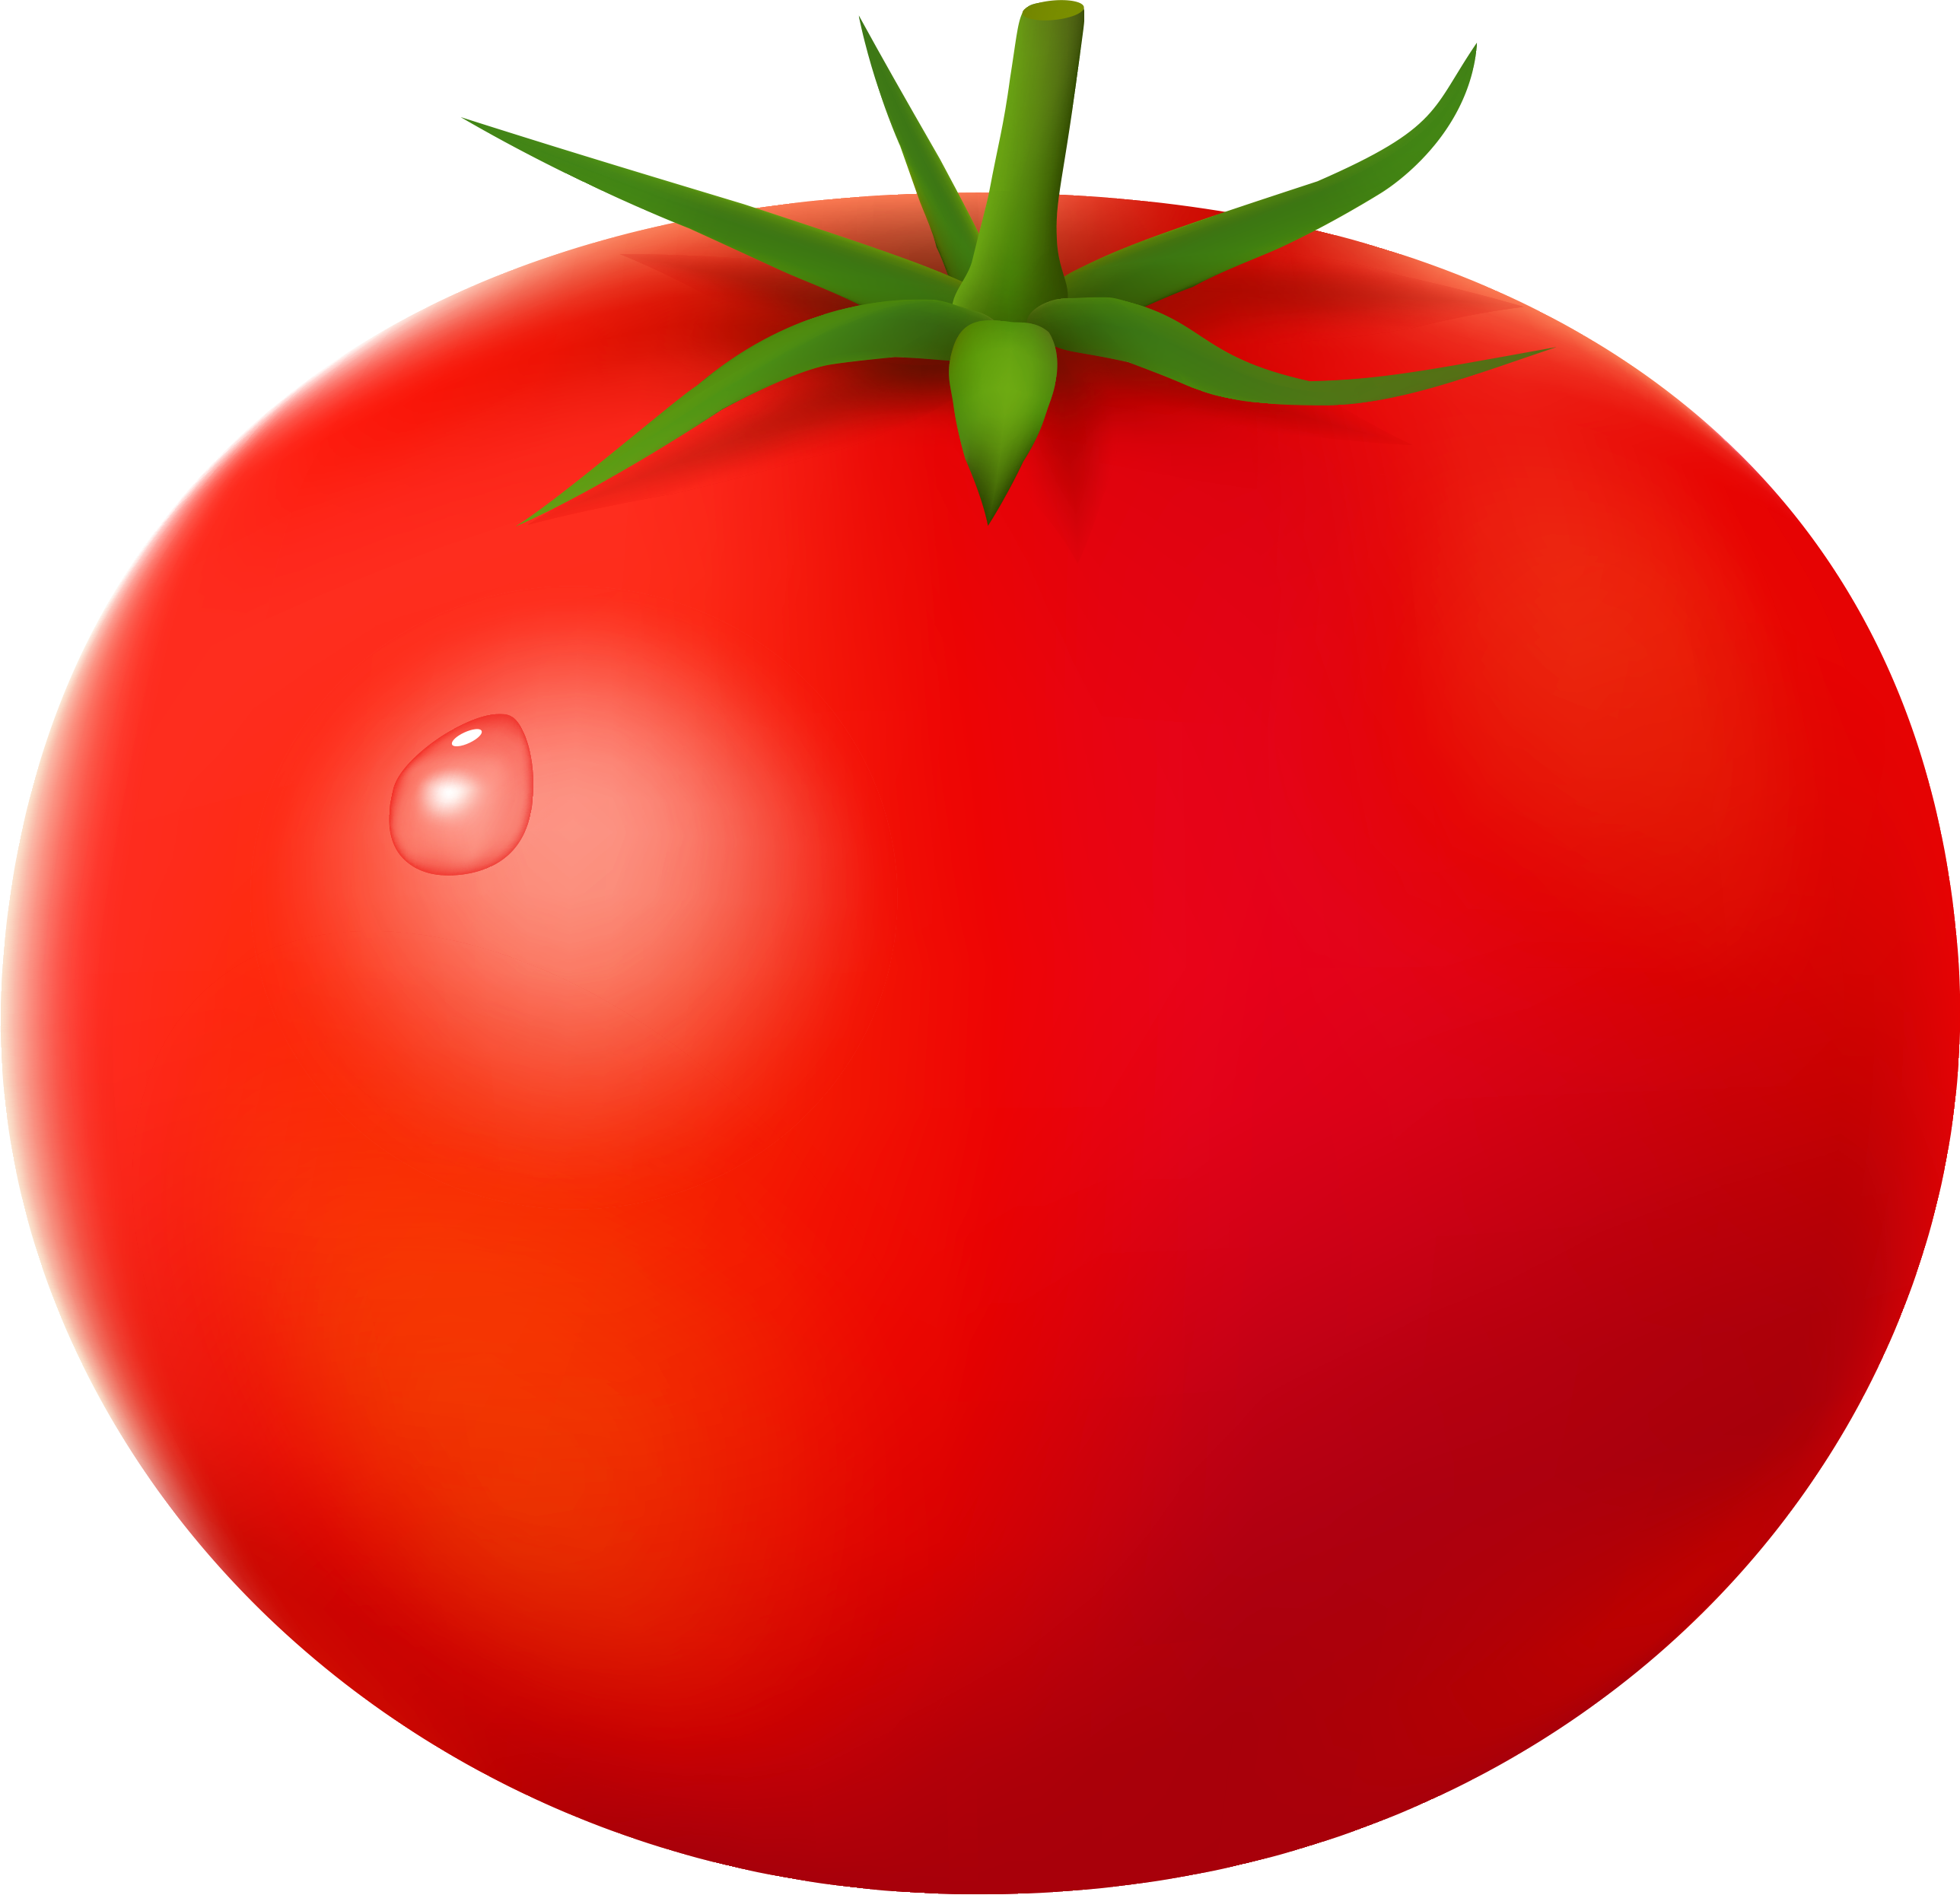 Tomato PNG - Tomato PNG HD